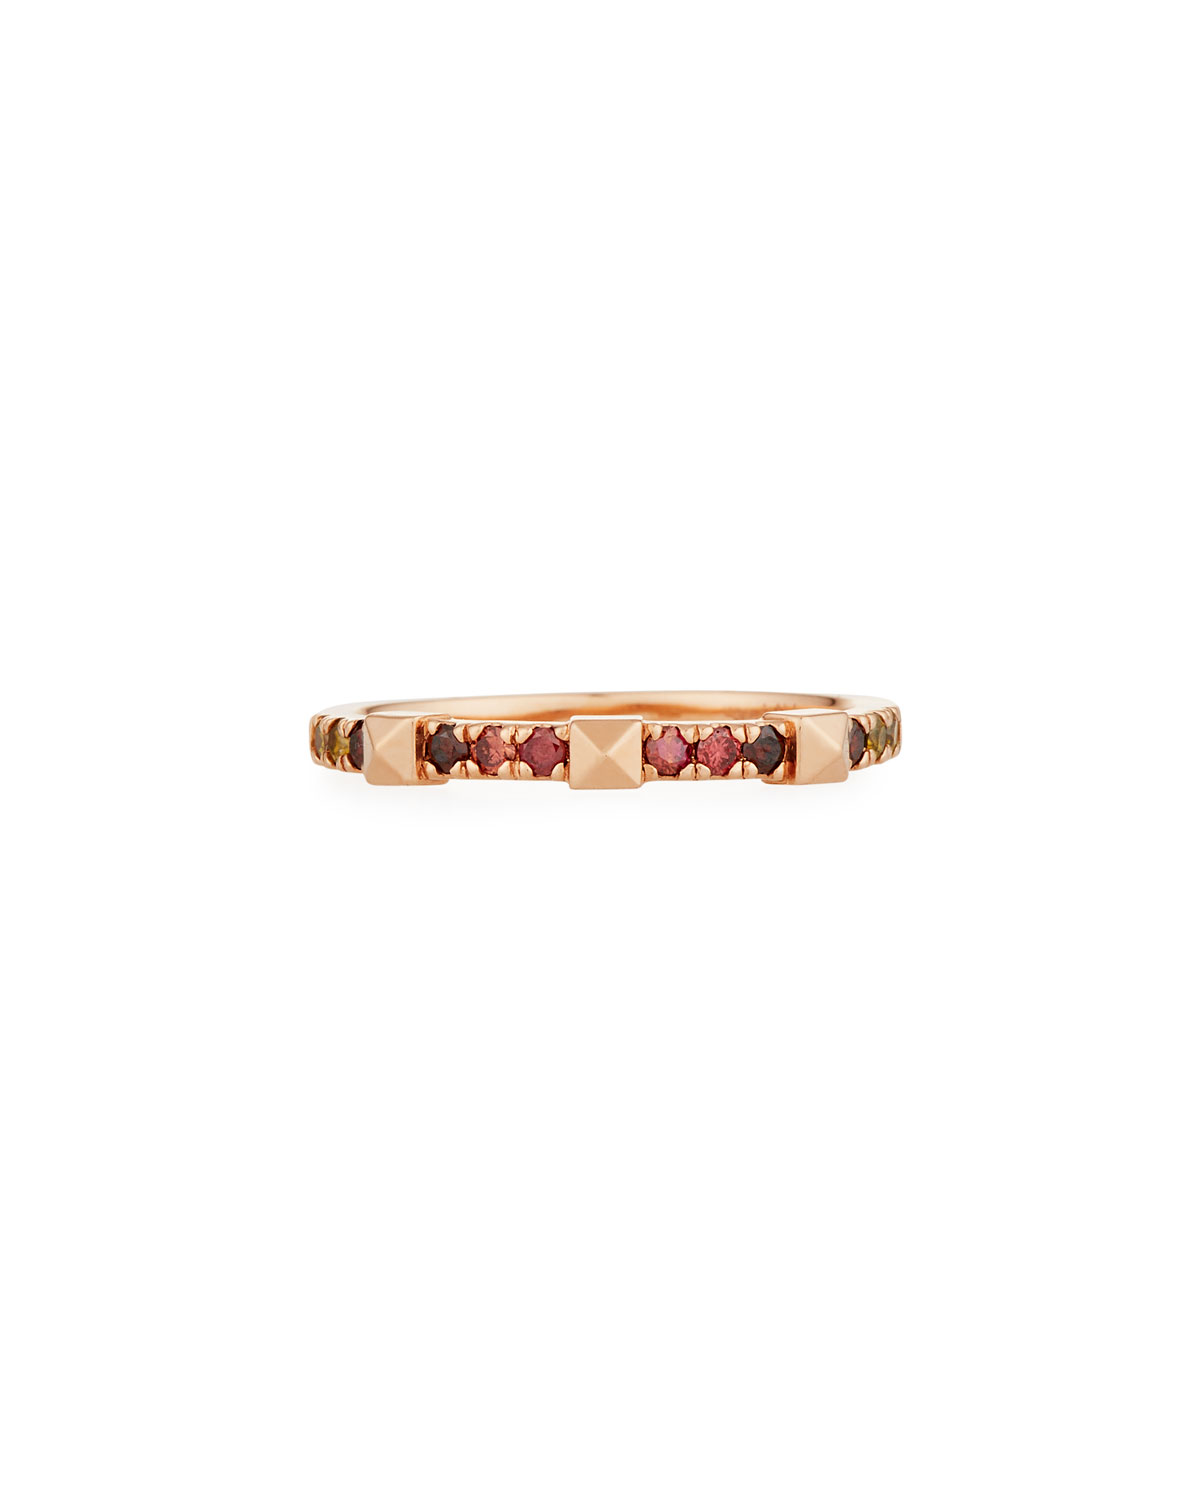 STEVIE WREN 14K Rose Gold Warm Ombre Diamond & Pyramid Stackable Ring, Size 7